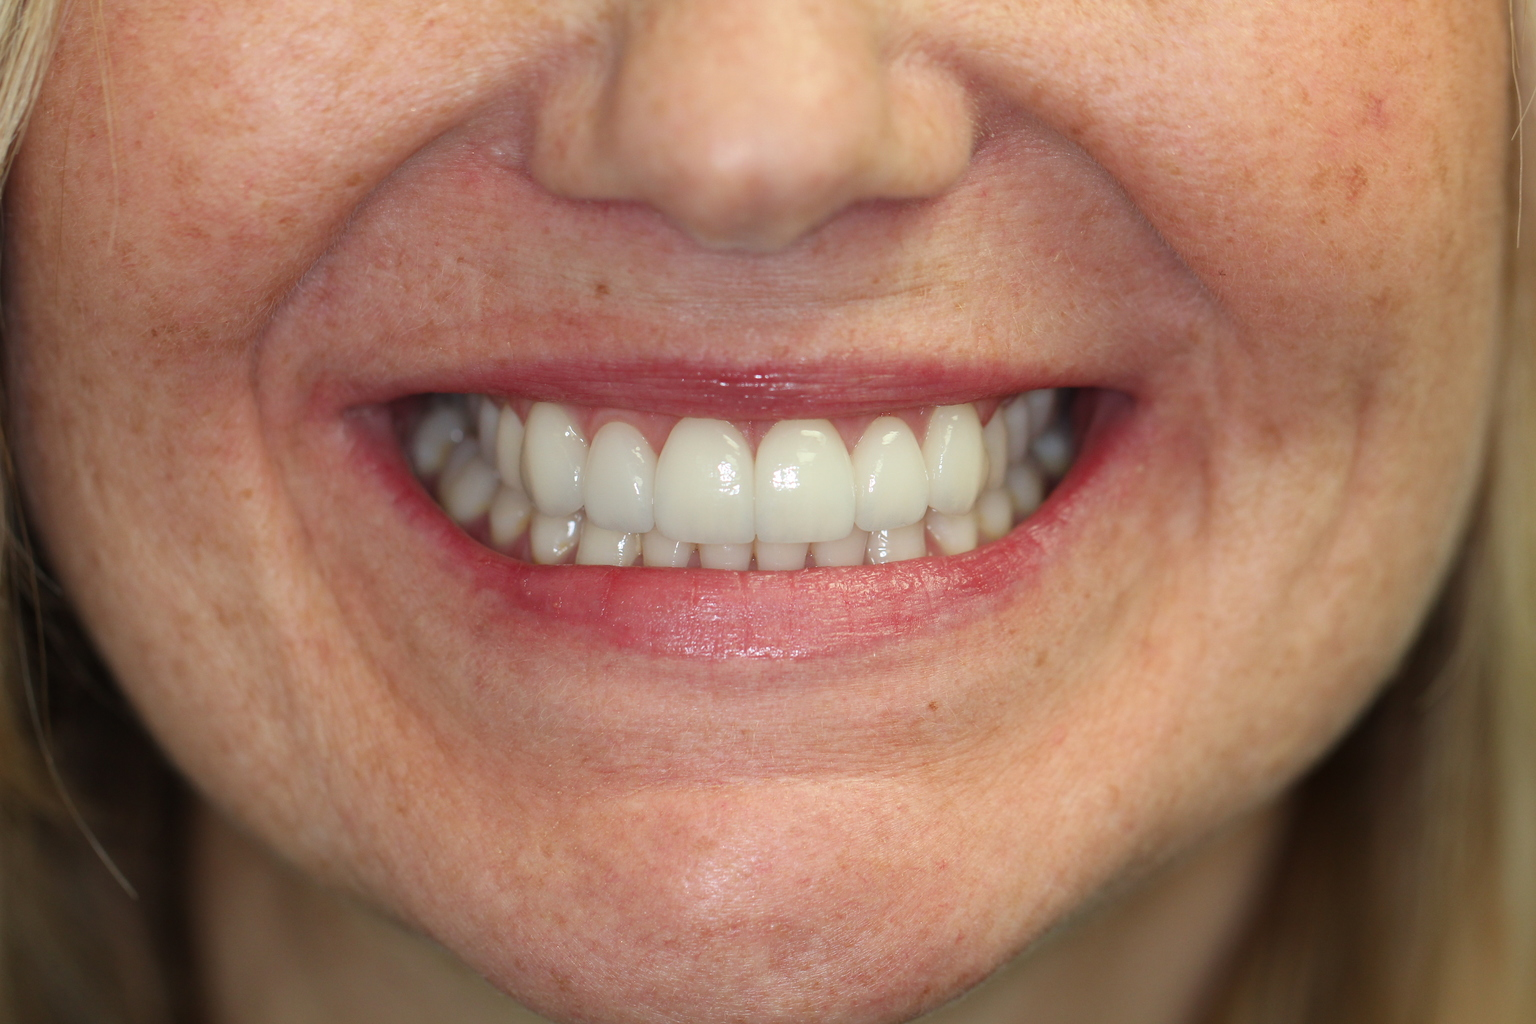 A female that had Veneer procedure completed at Ames Family Dental